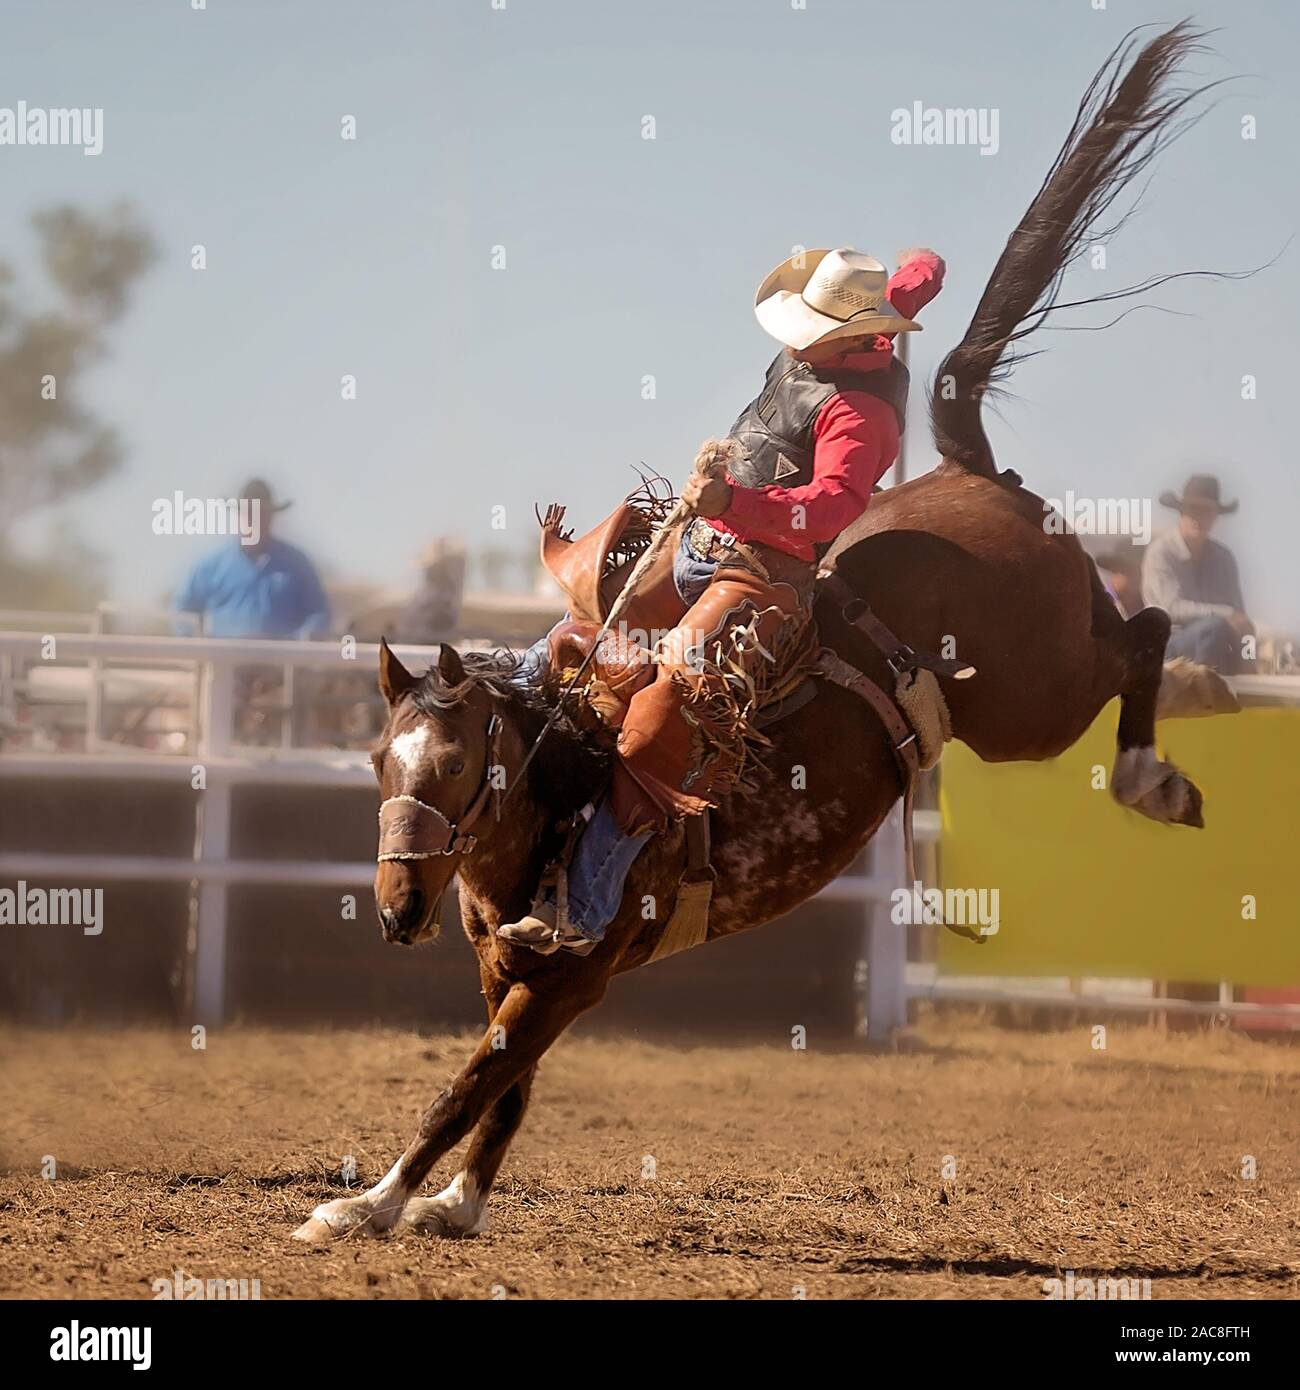 A Cowboy Rides A Bucking Horse In Saddle Bronc Event At A Country Rodeo Stock Photo Alamy